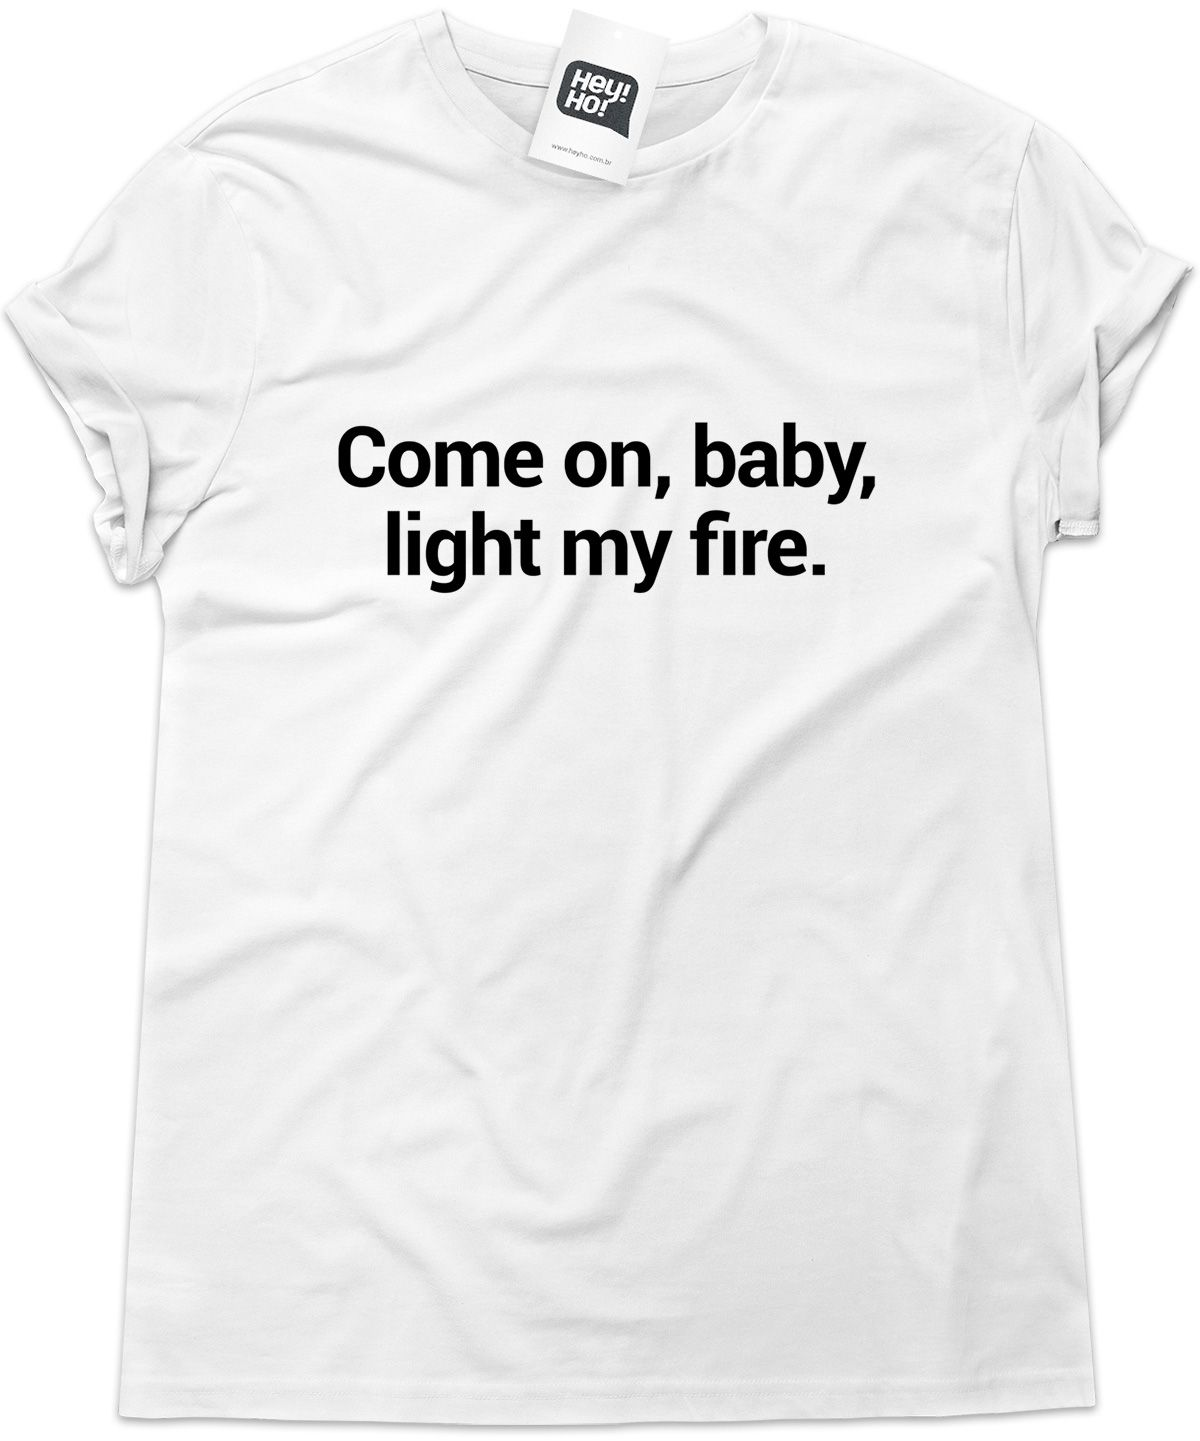 THE DOORS - Come on baby light my fire